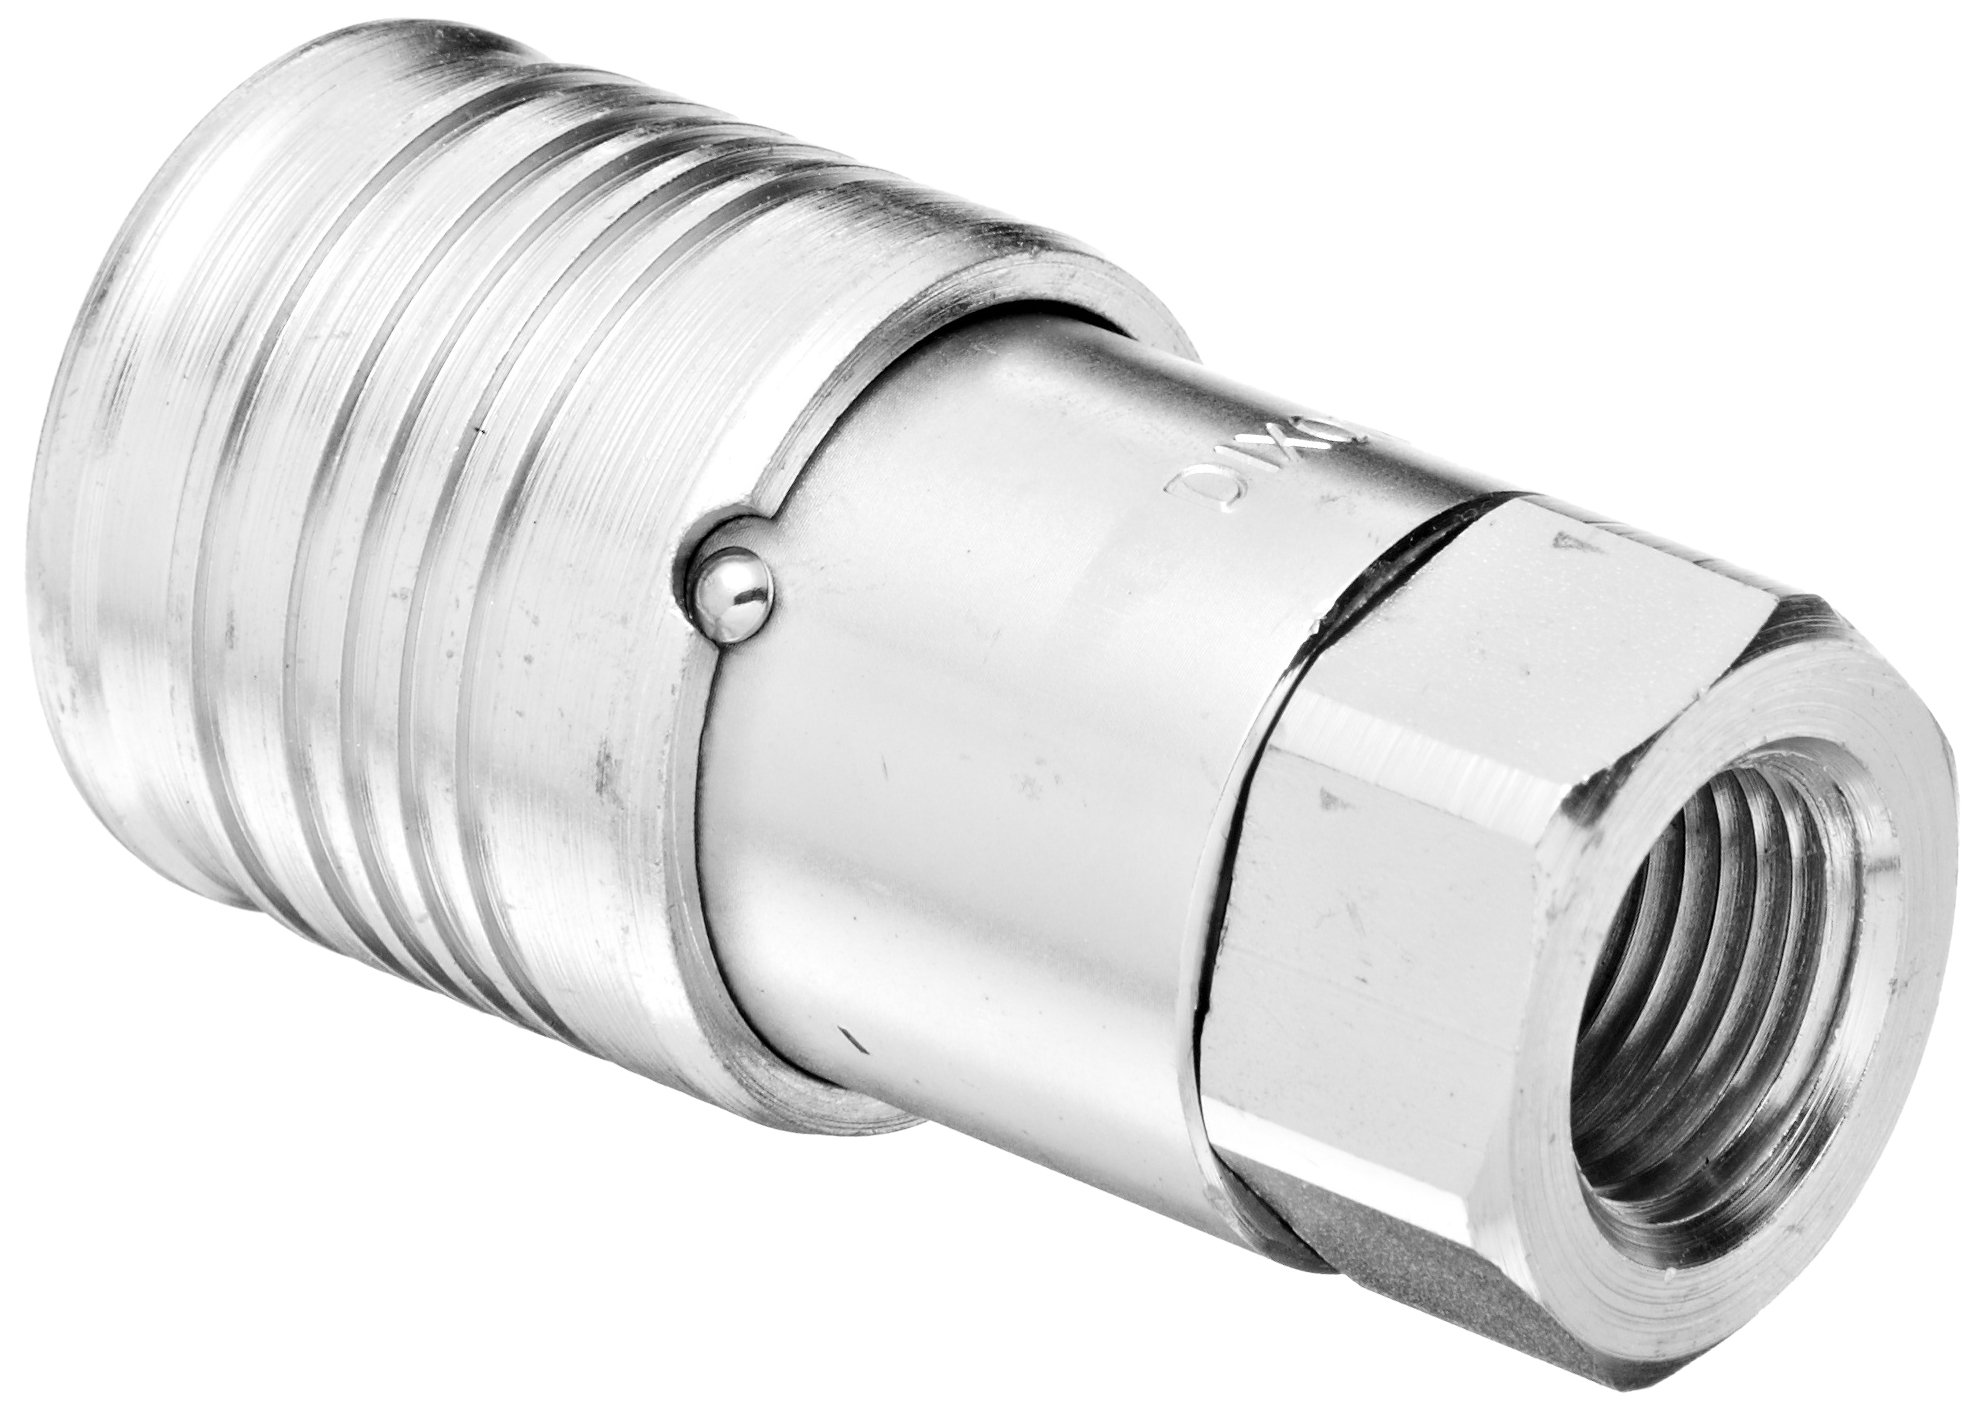 Dixon 4HTF4 Steel Flush Face Hydraulic Quick-Connect Fitting, Coupler, 1/2'' Coupling x 1/2''-14 NPTF